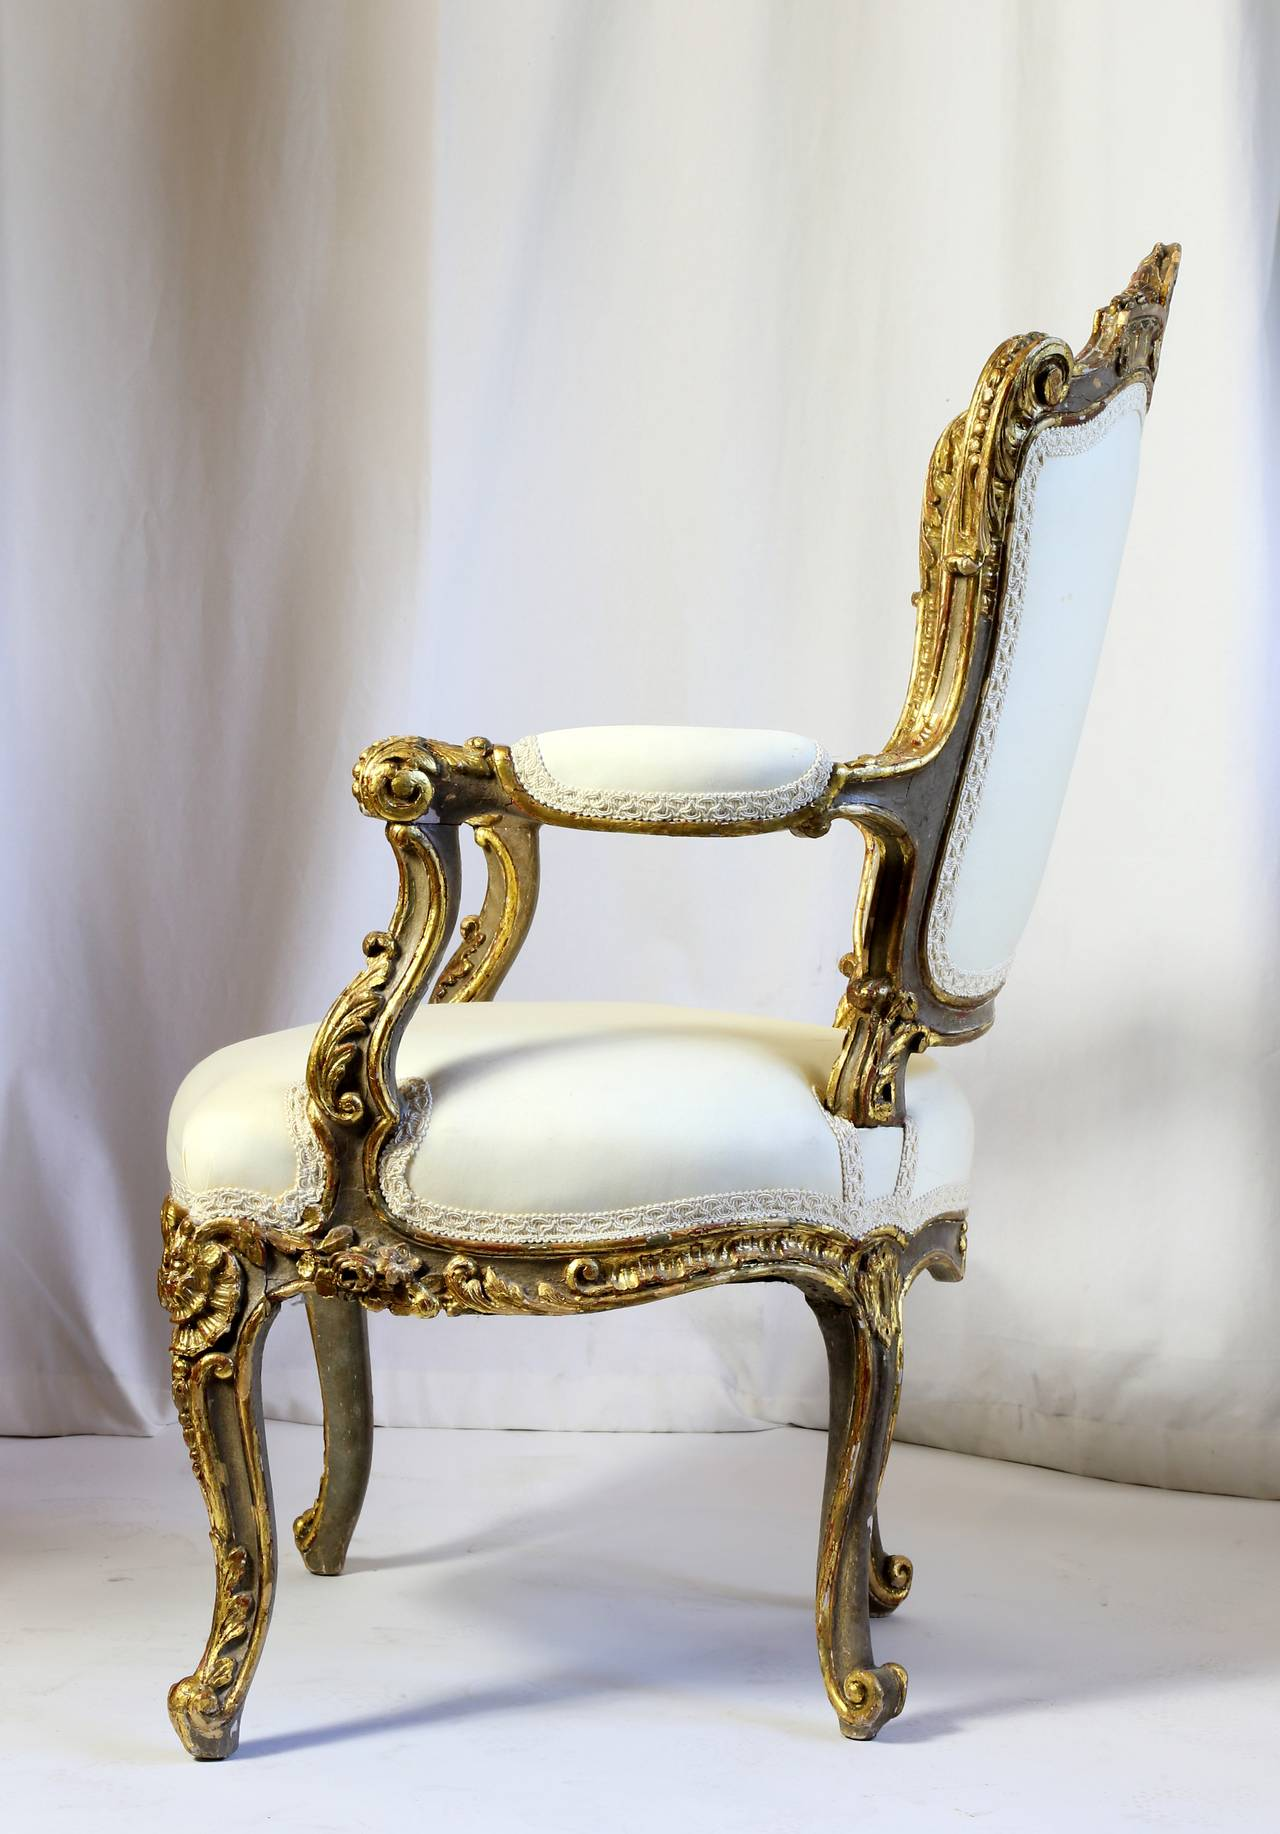 Italian Heavily Carved and Gilded Rococo Open Armchair For Sale at